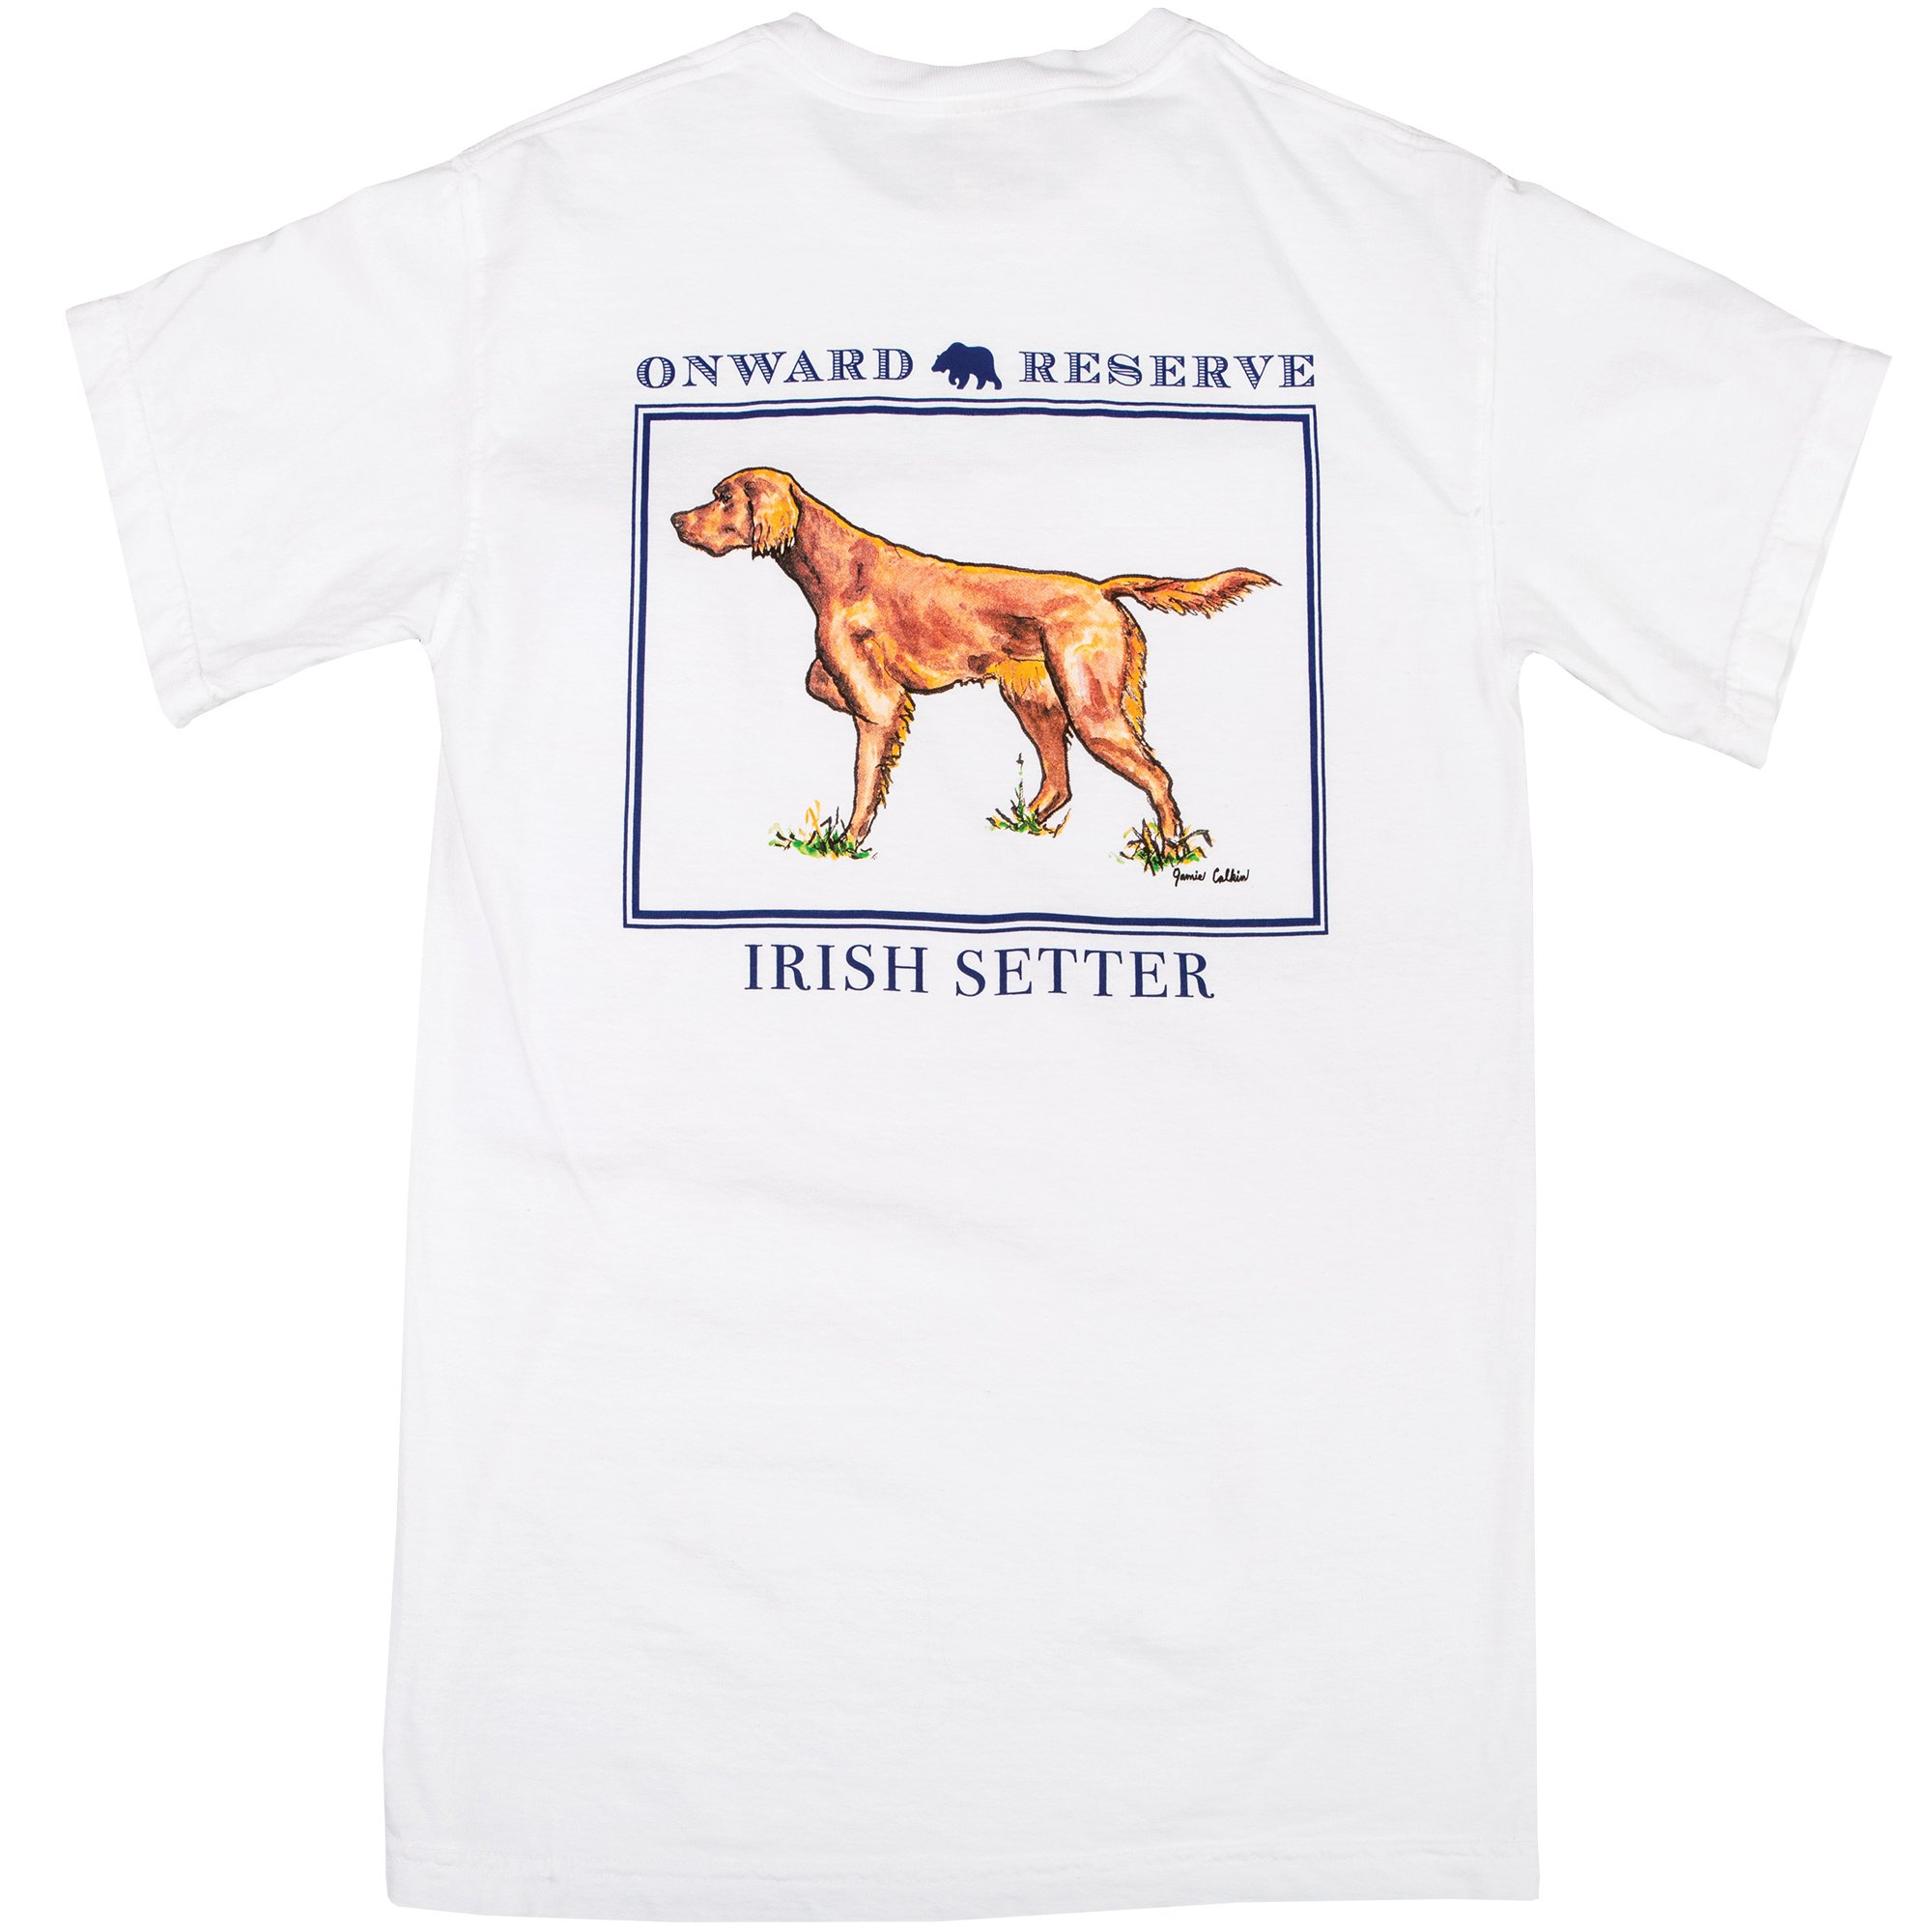 OR-Jamie-Tee-SS-Irish-Setter-White-Back.jpg